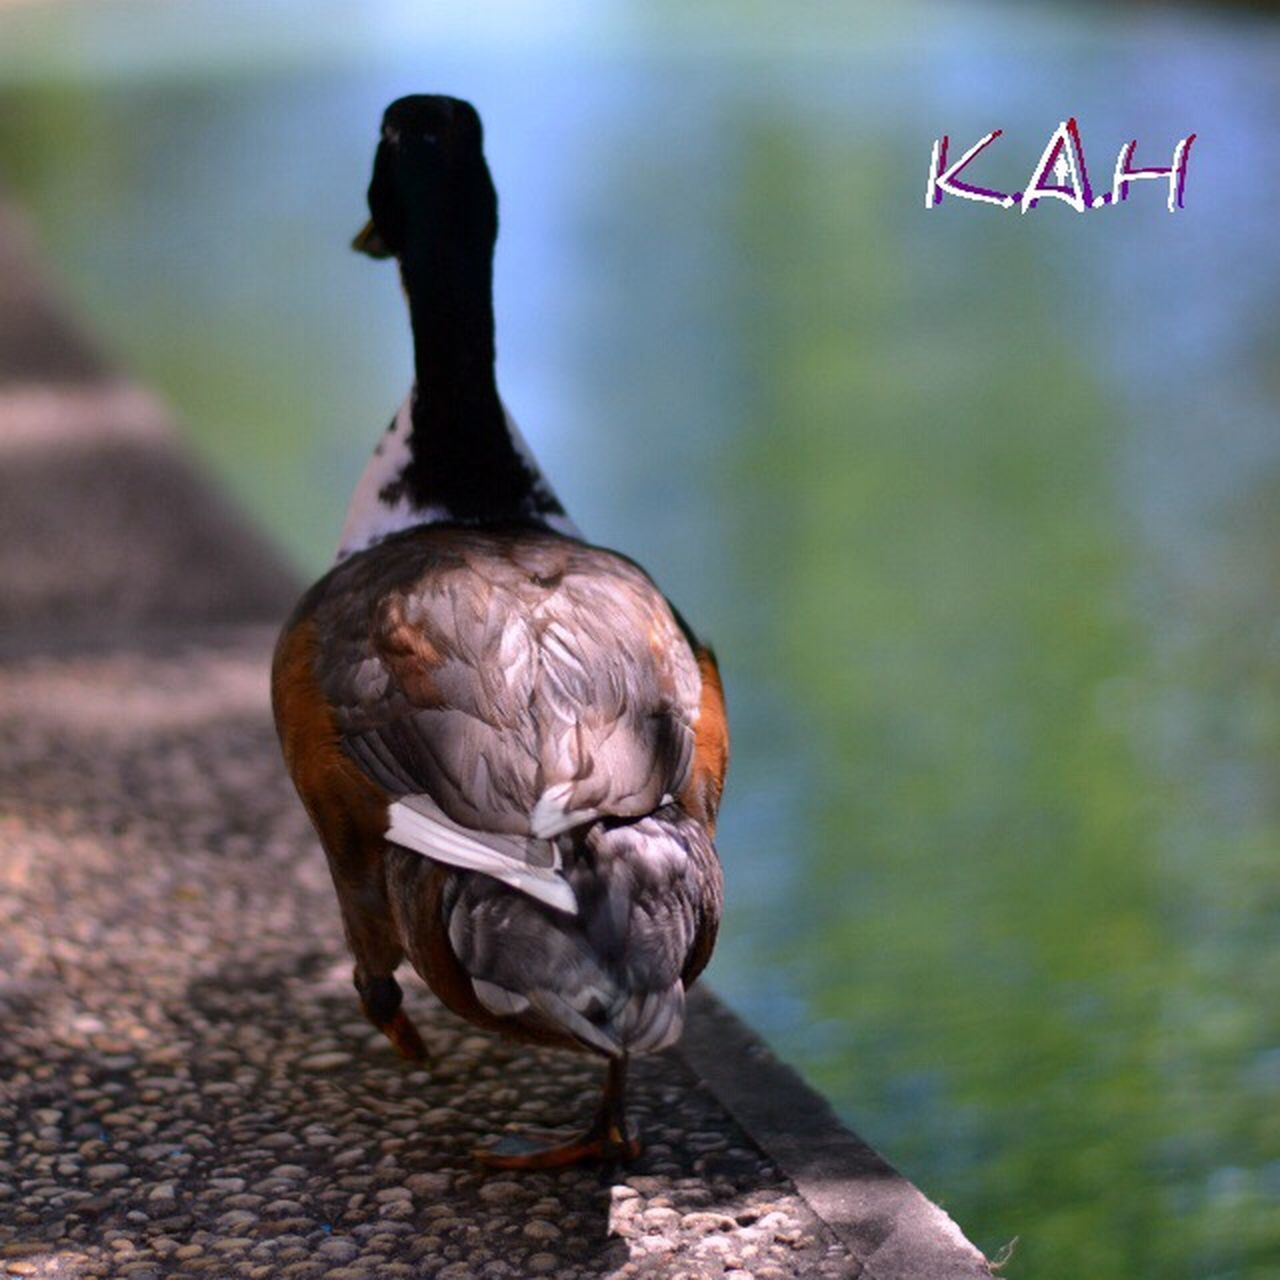 bird, animal themes, animals in the wild, animal wildlife, one animal, focus on foreground, no people, nature, day, outdoors, water, full length, close-up